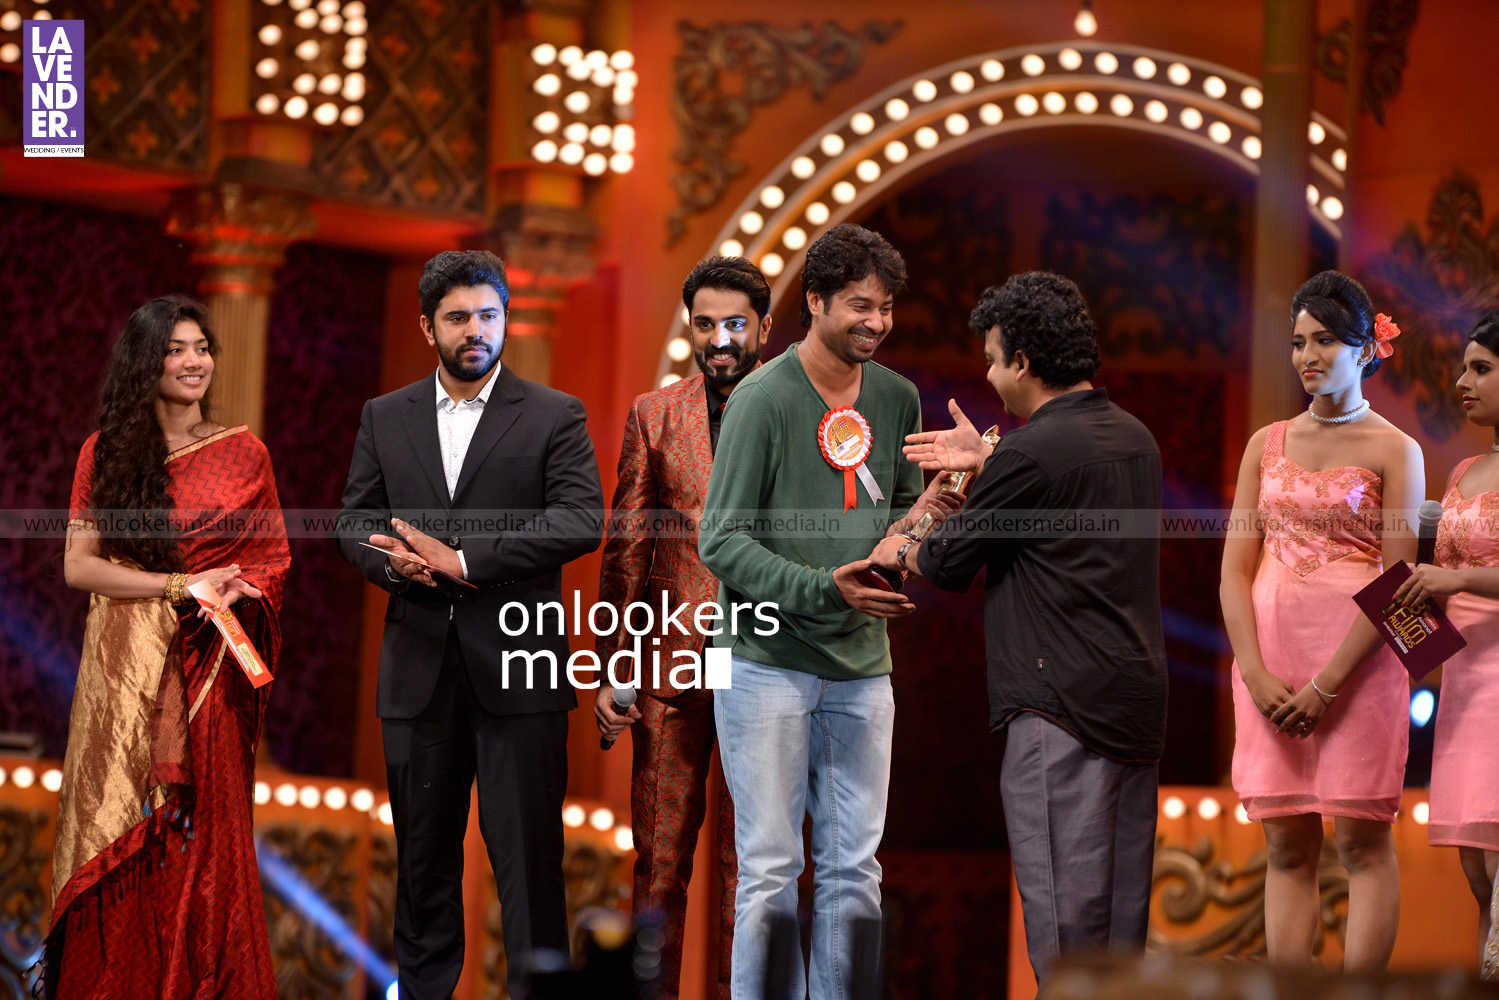 http://onlookersmedia.in/wp-content/uploads/2016/02/Nivin-Pauly-at-Asianet-Film-Award-2016-41.jpg